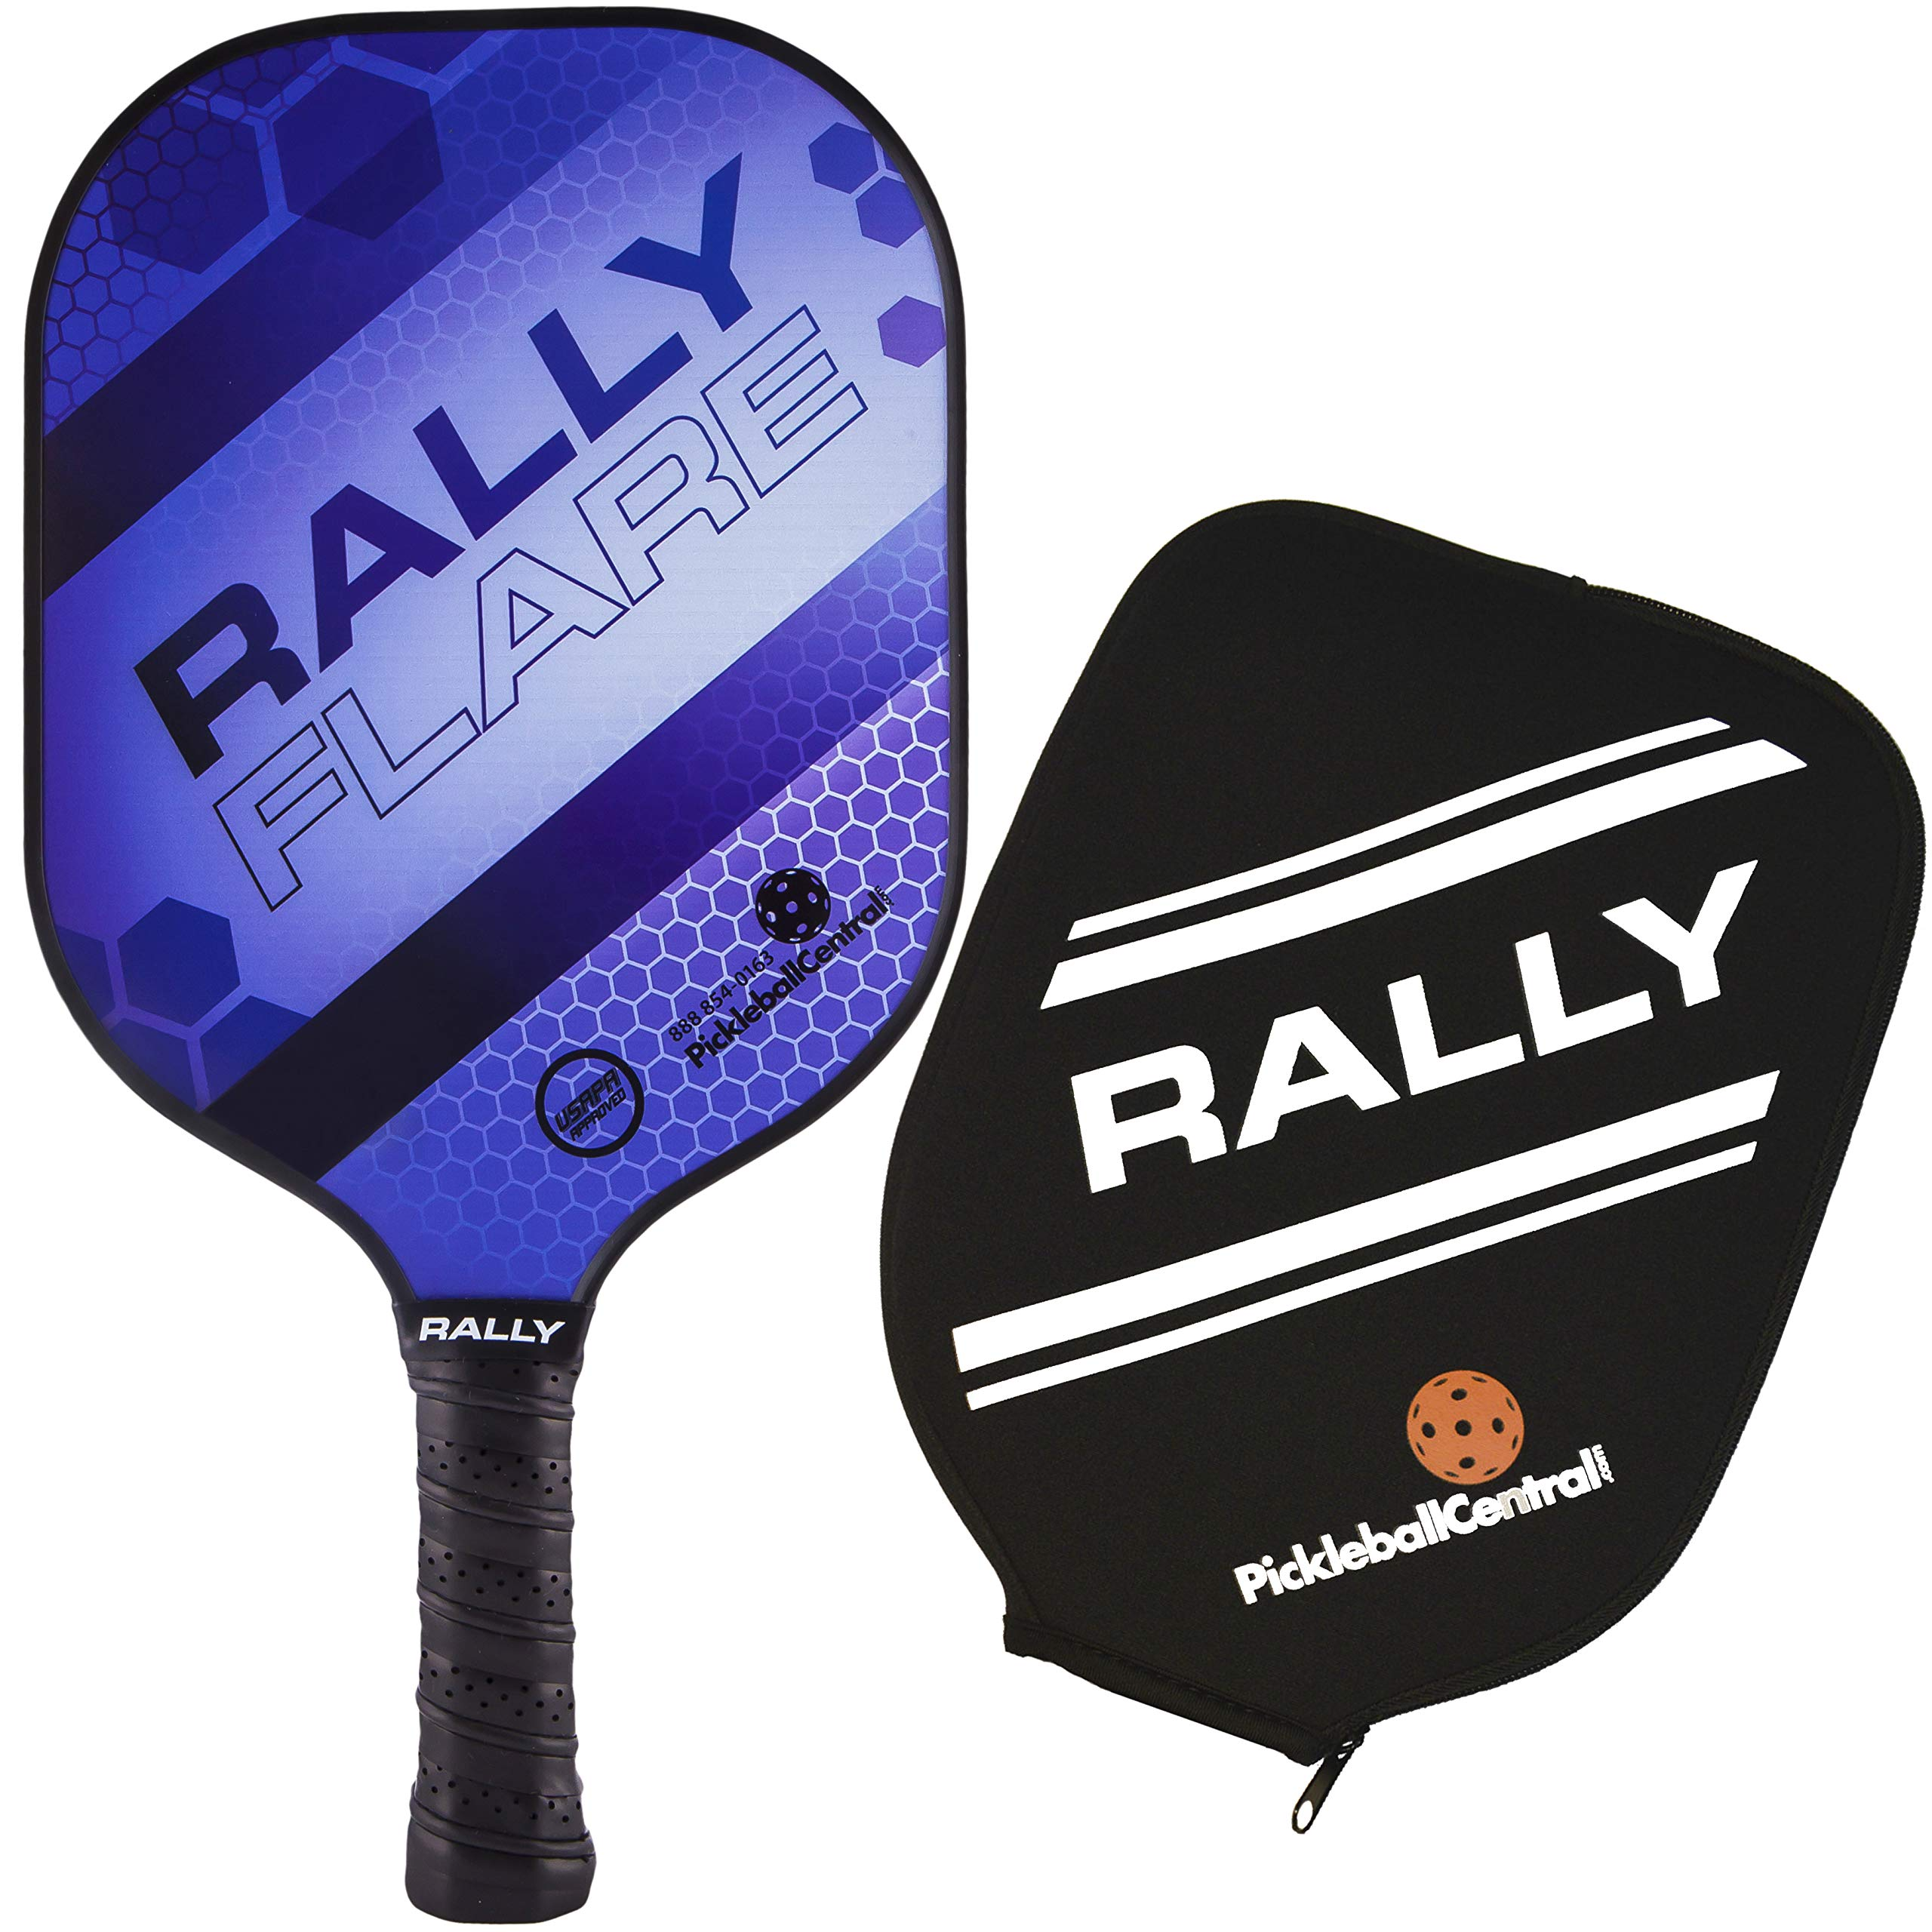 Rally Flare Graphite Pickleball Paddle - Purple | Polymer Honeycomb Core, Graphite Face | Lightweight Control, Power, Spin | Paddle Cover Included in Bundle | USAPA Approved